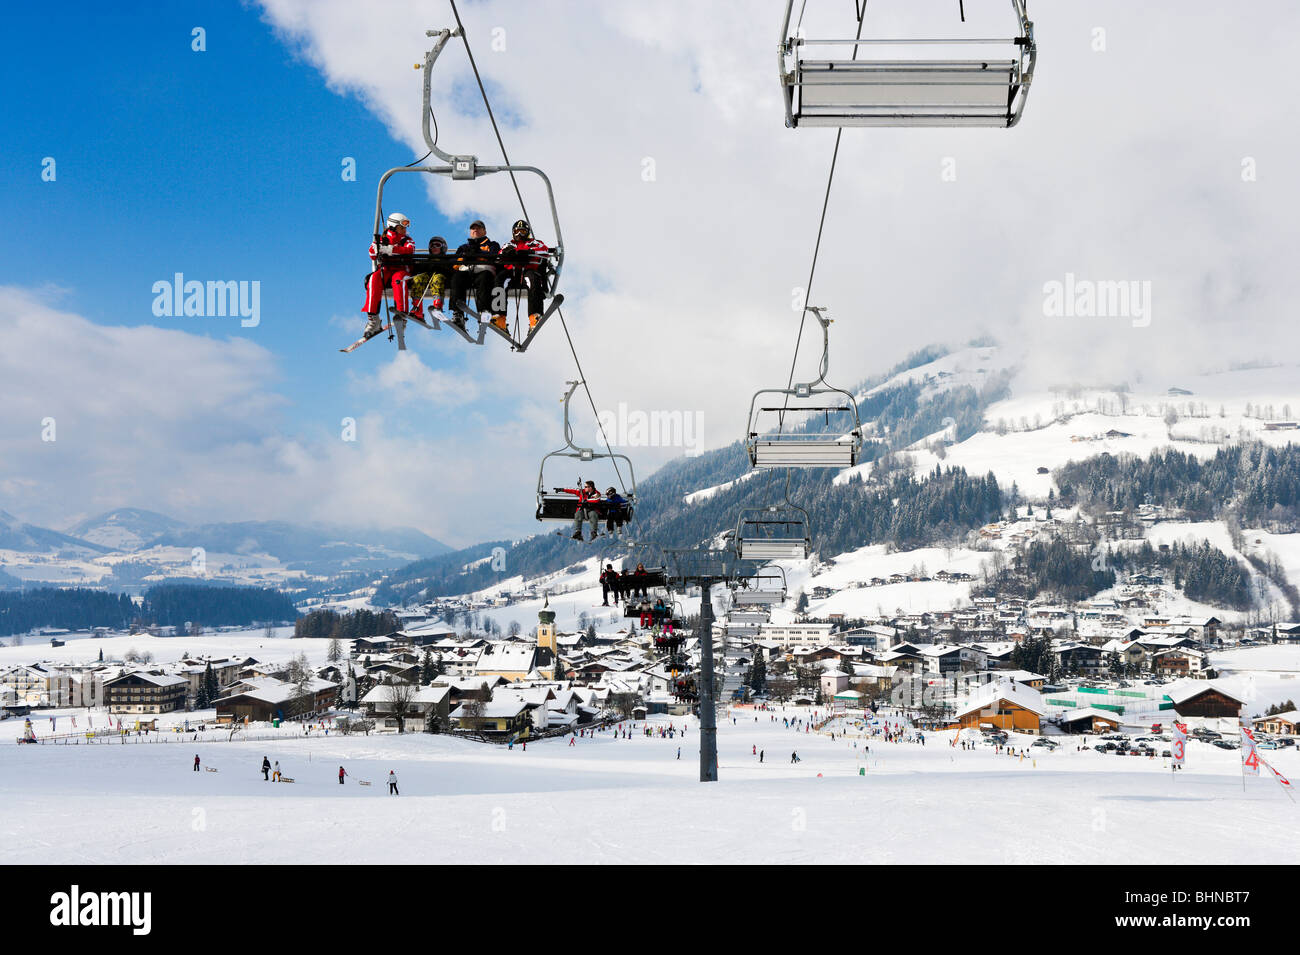 View over the resort from the nursery slopes, Westendorf, Tyrol, Austria - Stock Image